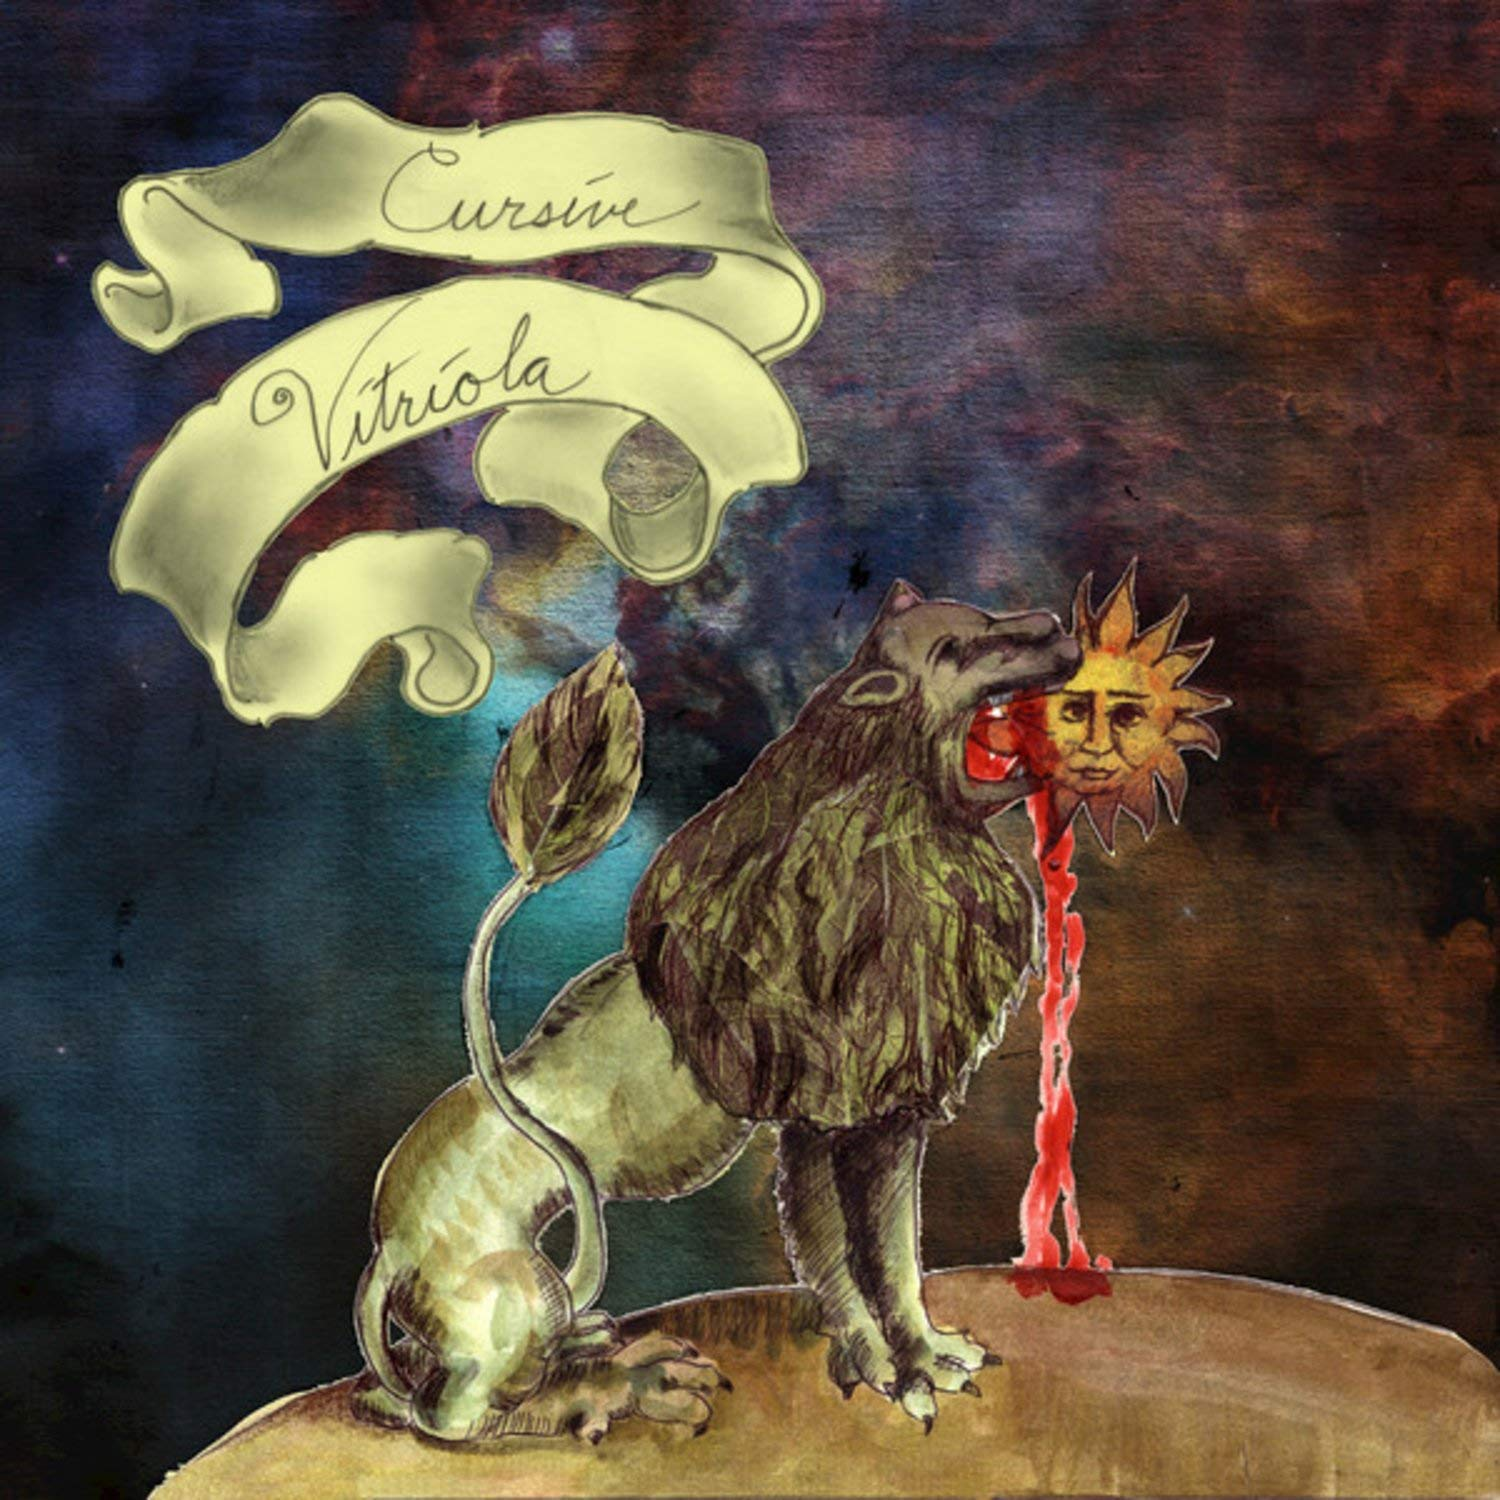 Cursive - Vitriola [Indie Exclusive Limited Edition Black / Gold Marble LP]